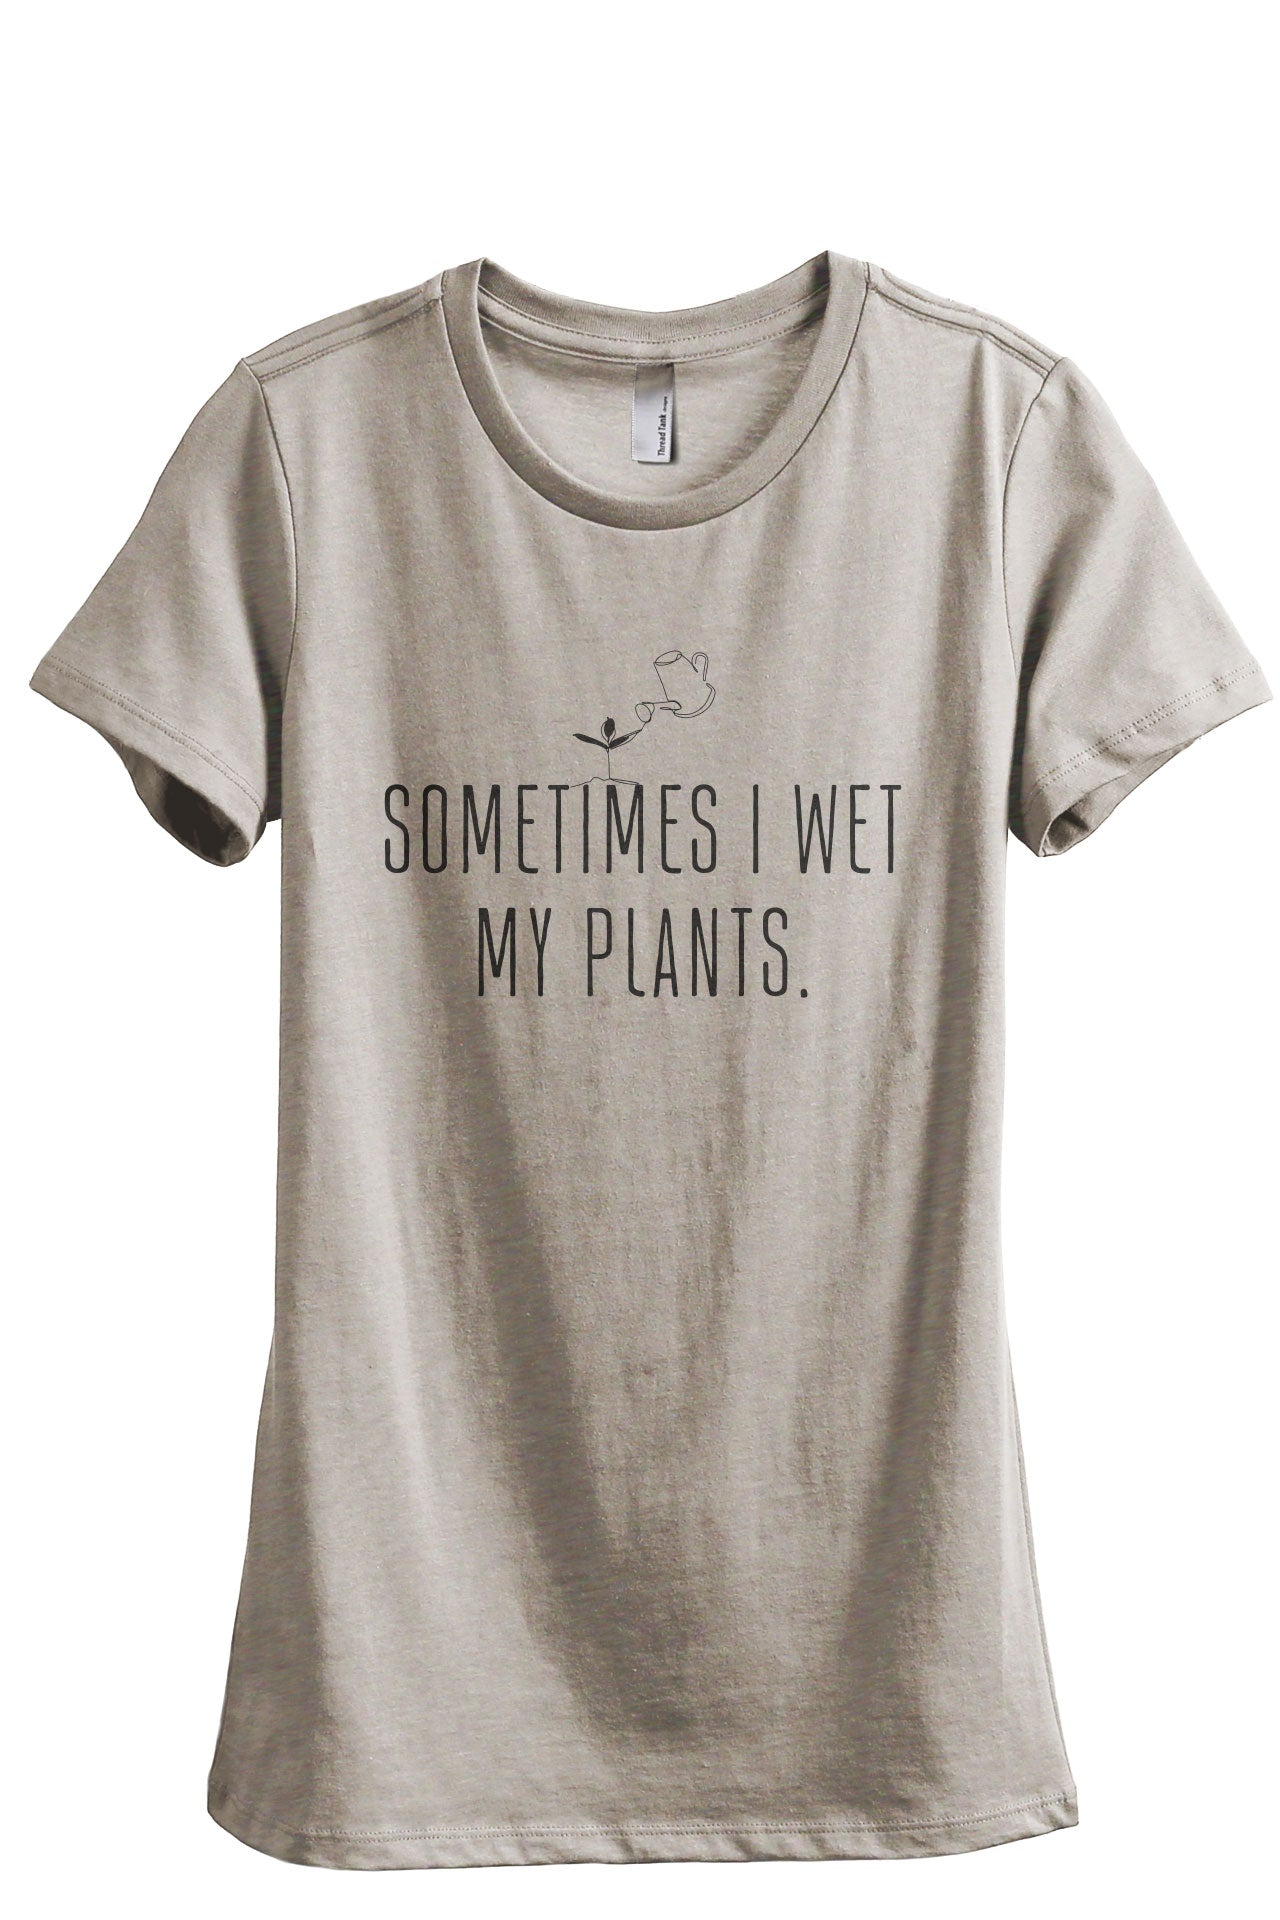 Sometimes I Wet My Plants Women's Relaxed Crewneck T-Shirt Top Tee Heather Tan